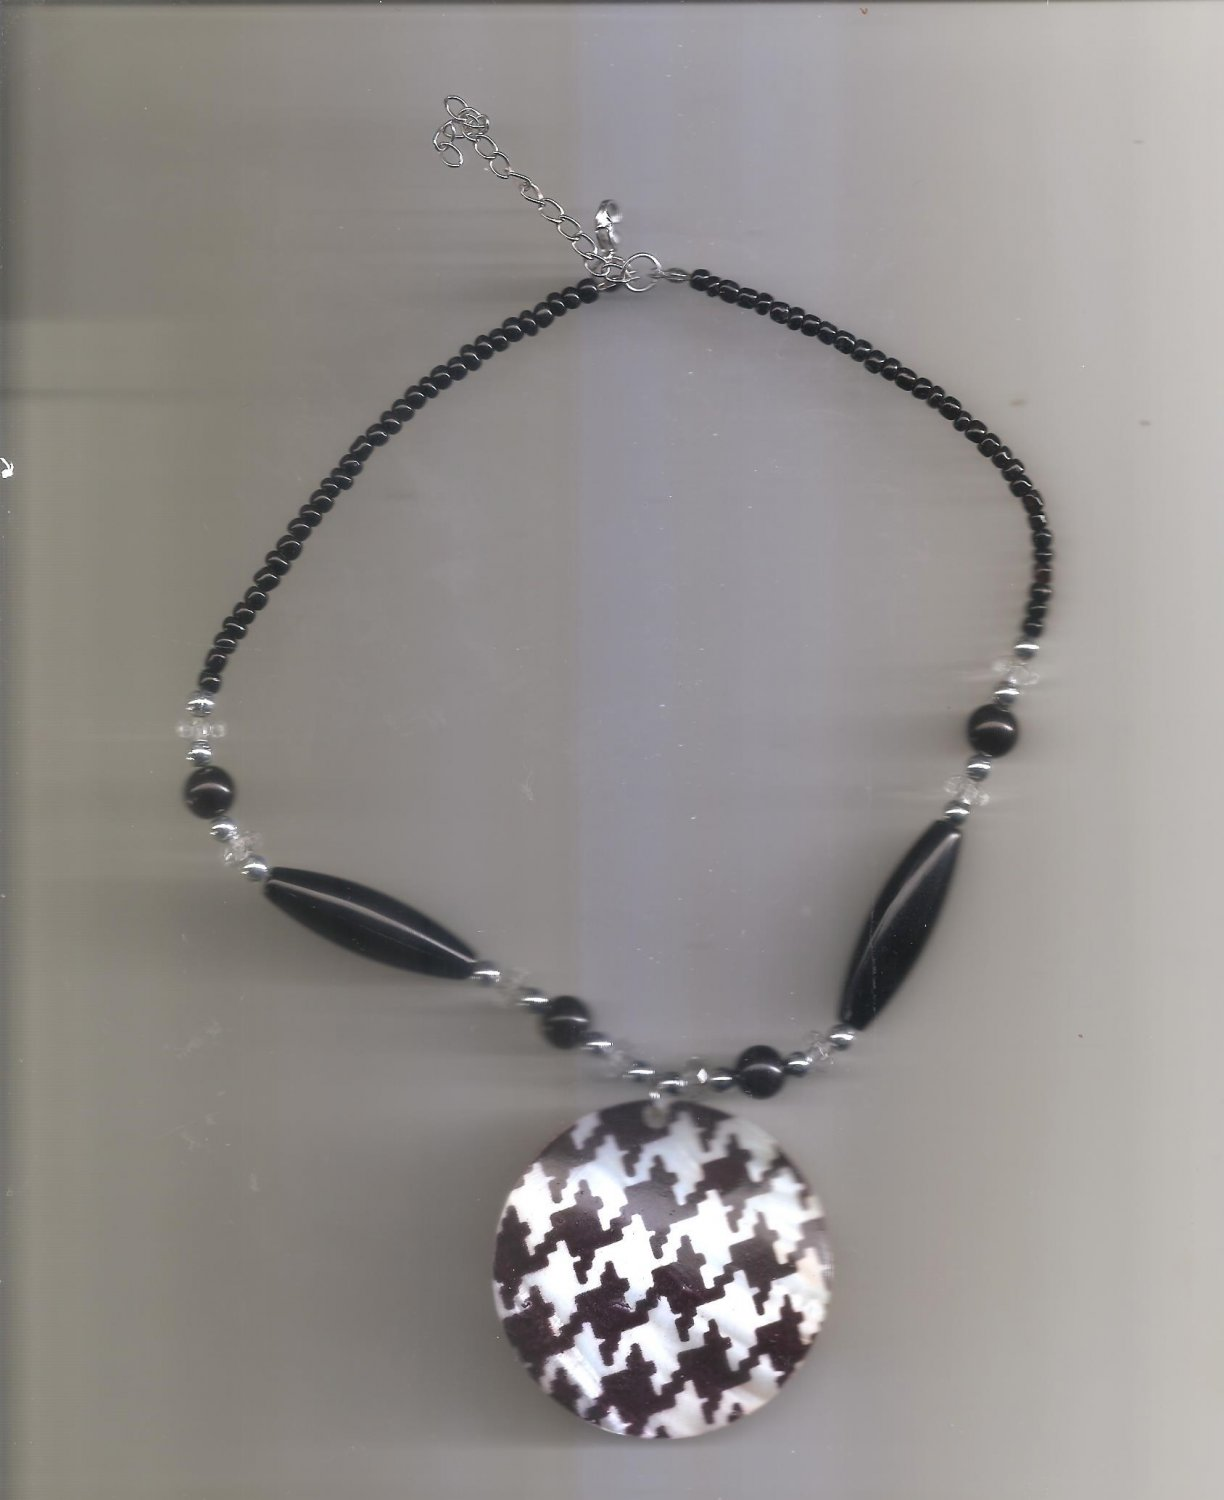 Black & White Large Beaded Necklace 16 inches long